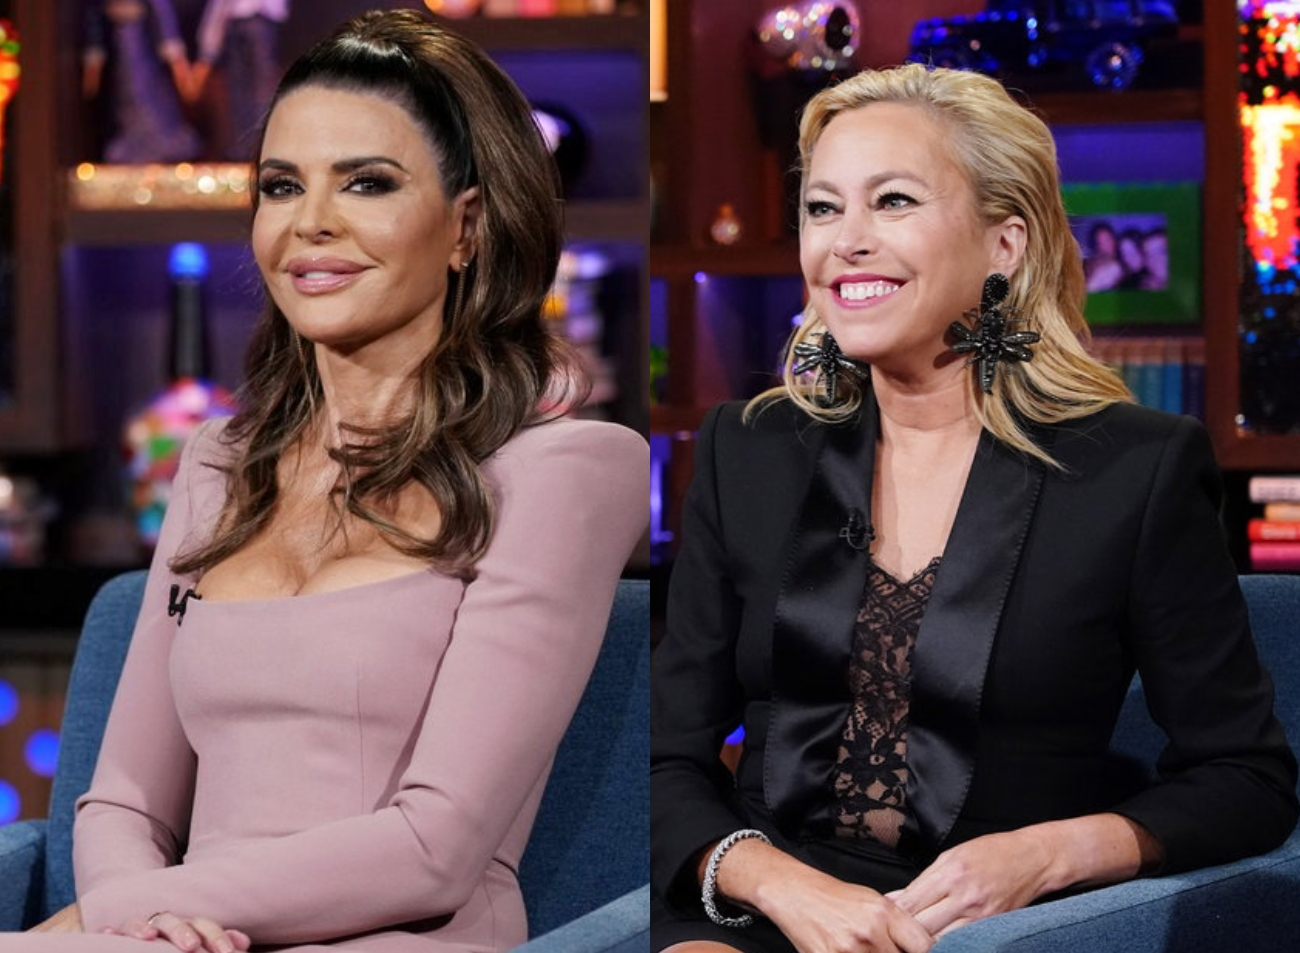 """RHOBH's Lisa Rinna Continues to Shade Sutton Stracke Over Elton John Gala Drama, Admits to Being """"Petty"""" and Slams Sutton for Lack of """"Class"""""""